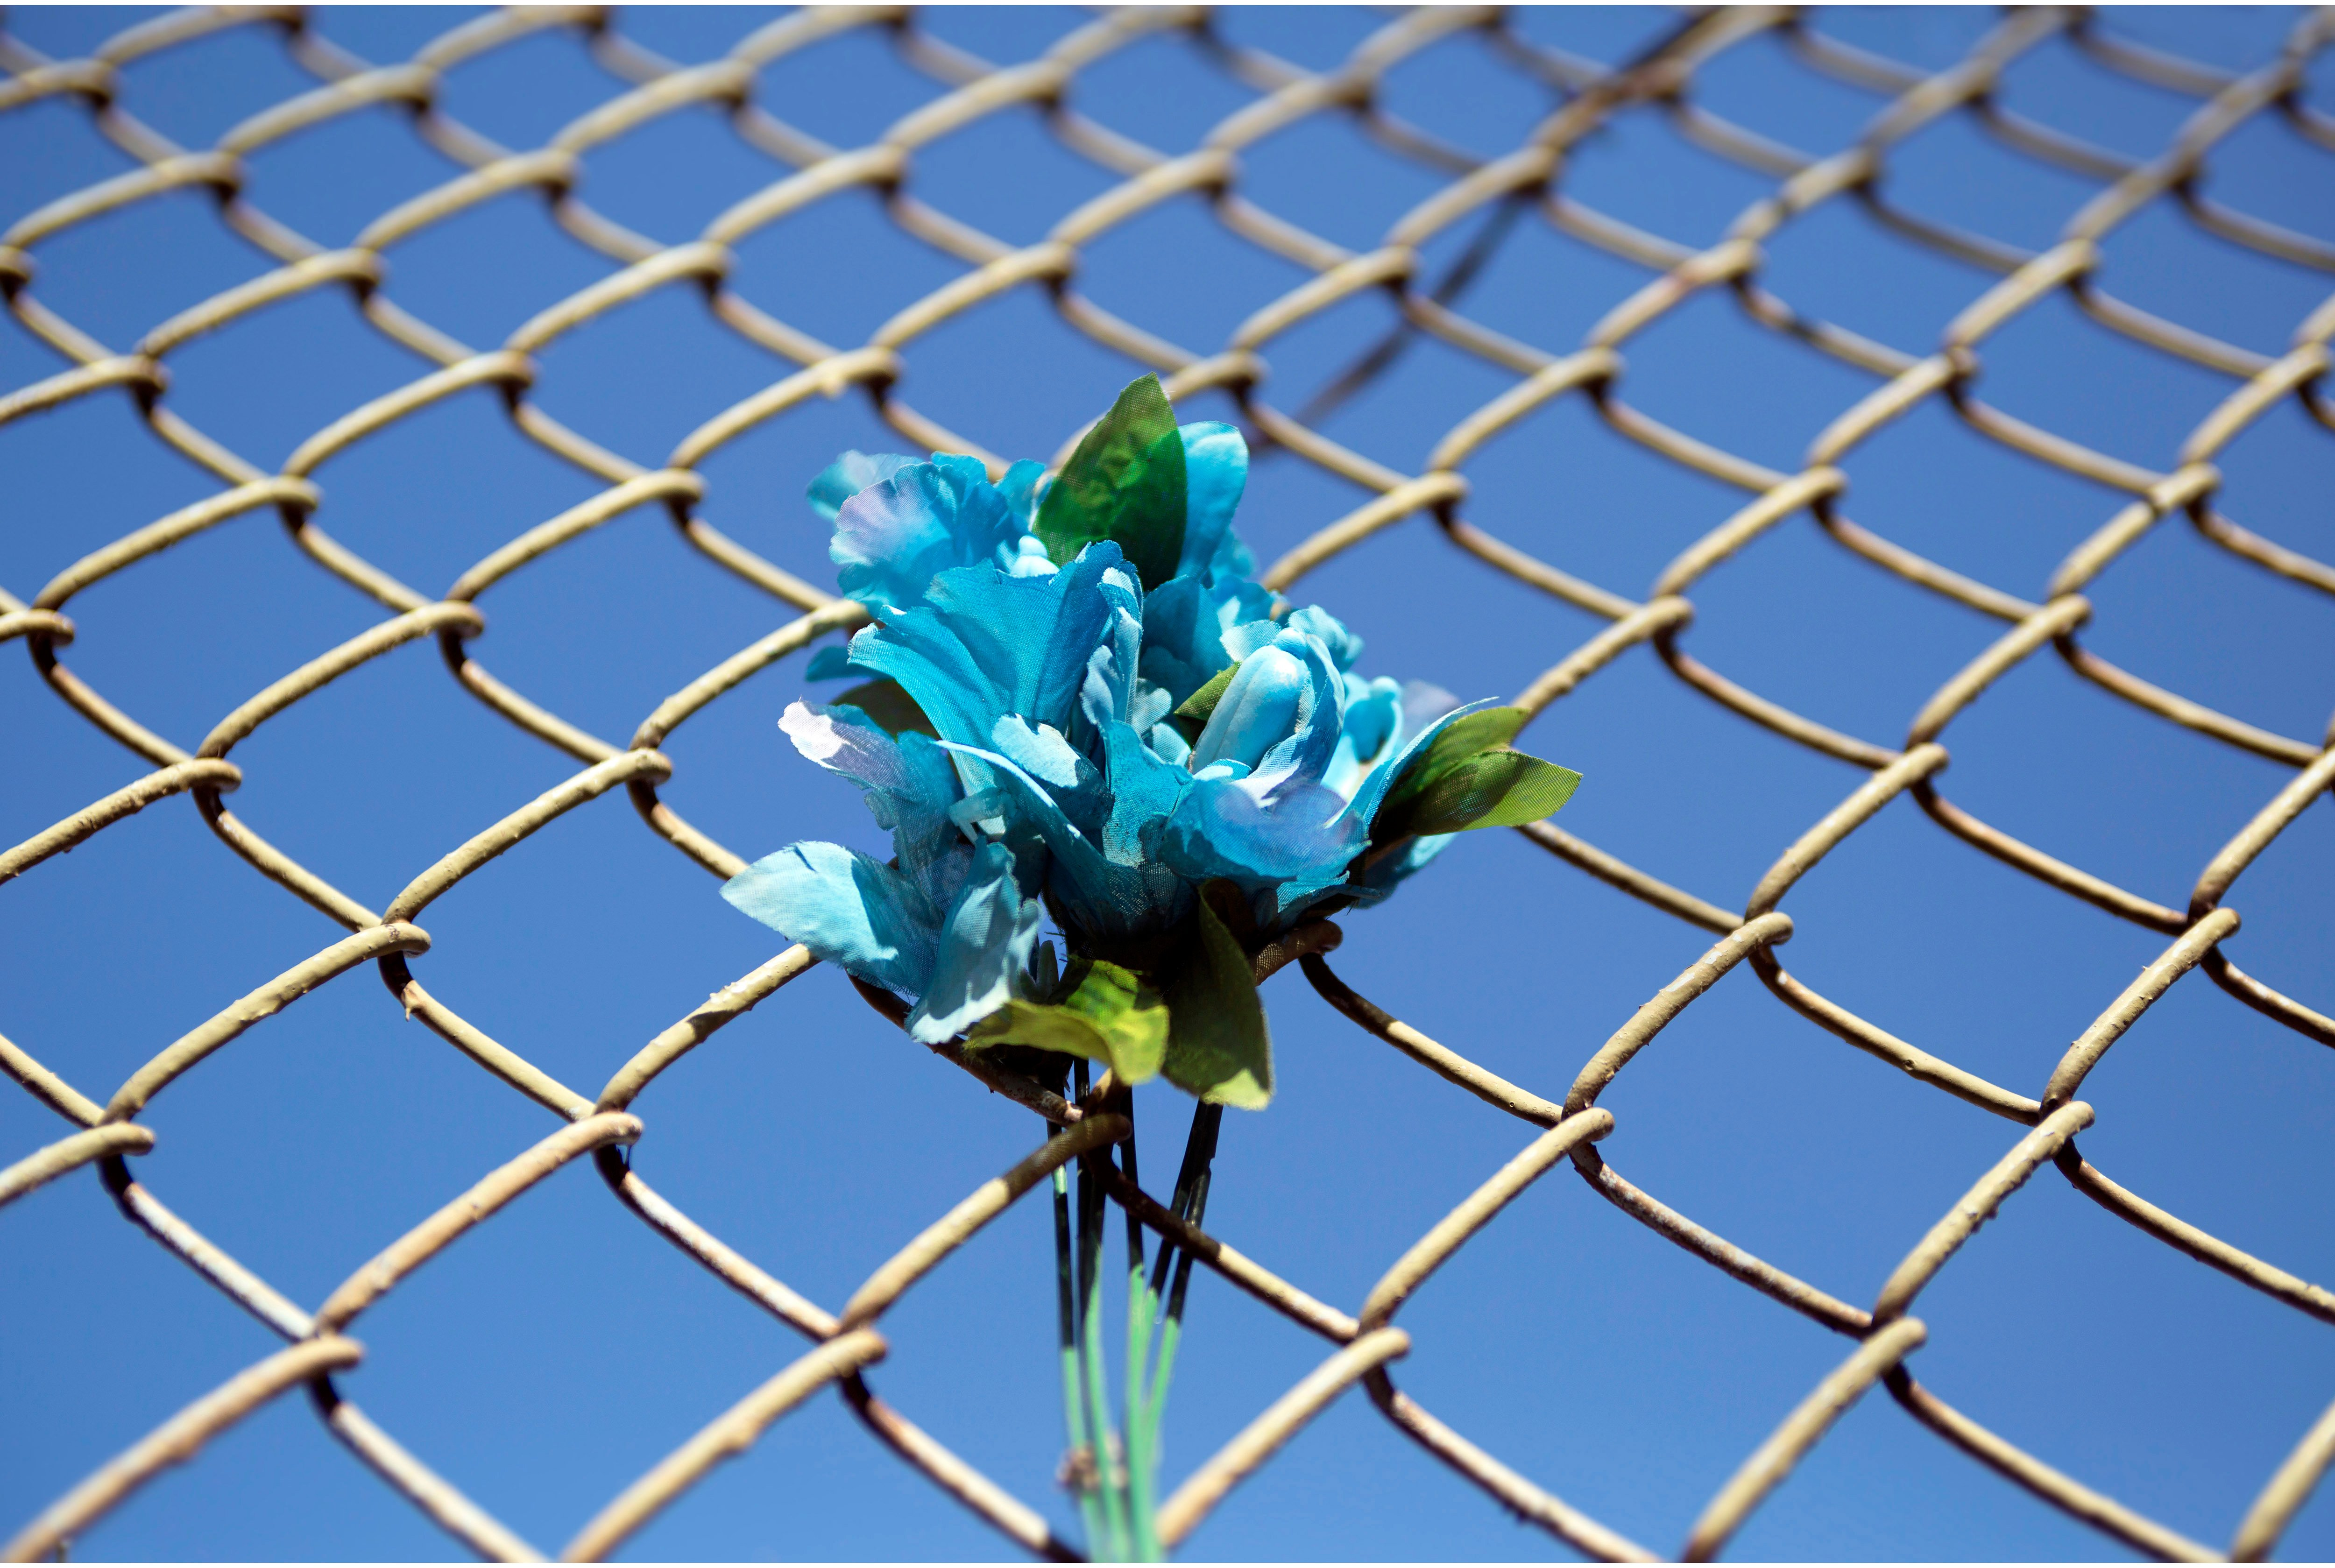 A blue flower placed in a fence in memorial of a man killed in Pilsen. (Courtesy of Thomas Ferrella)